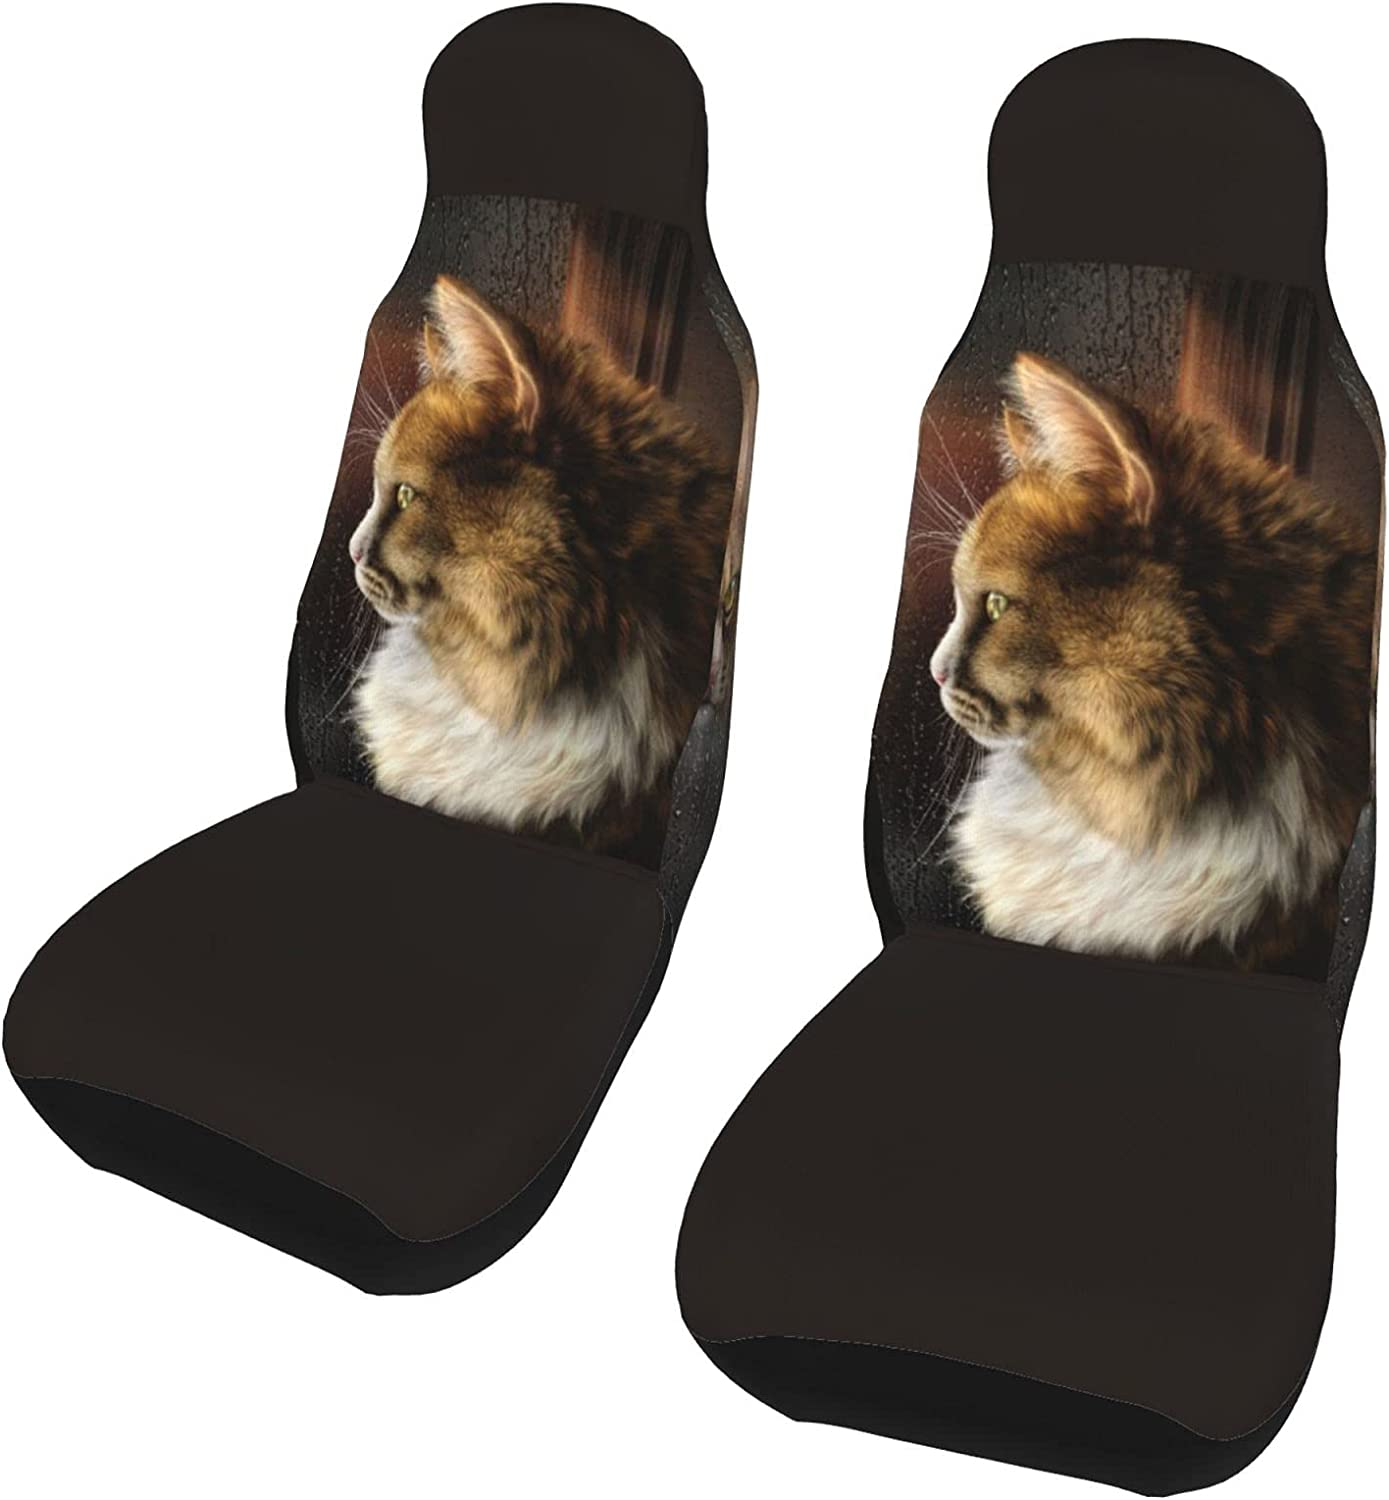 PictetW Cat in The Mirror On Day Nashville-Davidson Mall 5 ☆ very popular Seat Car Cover Rainy Universal